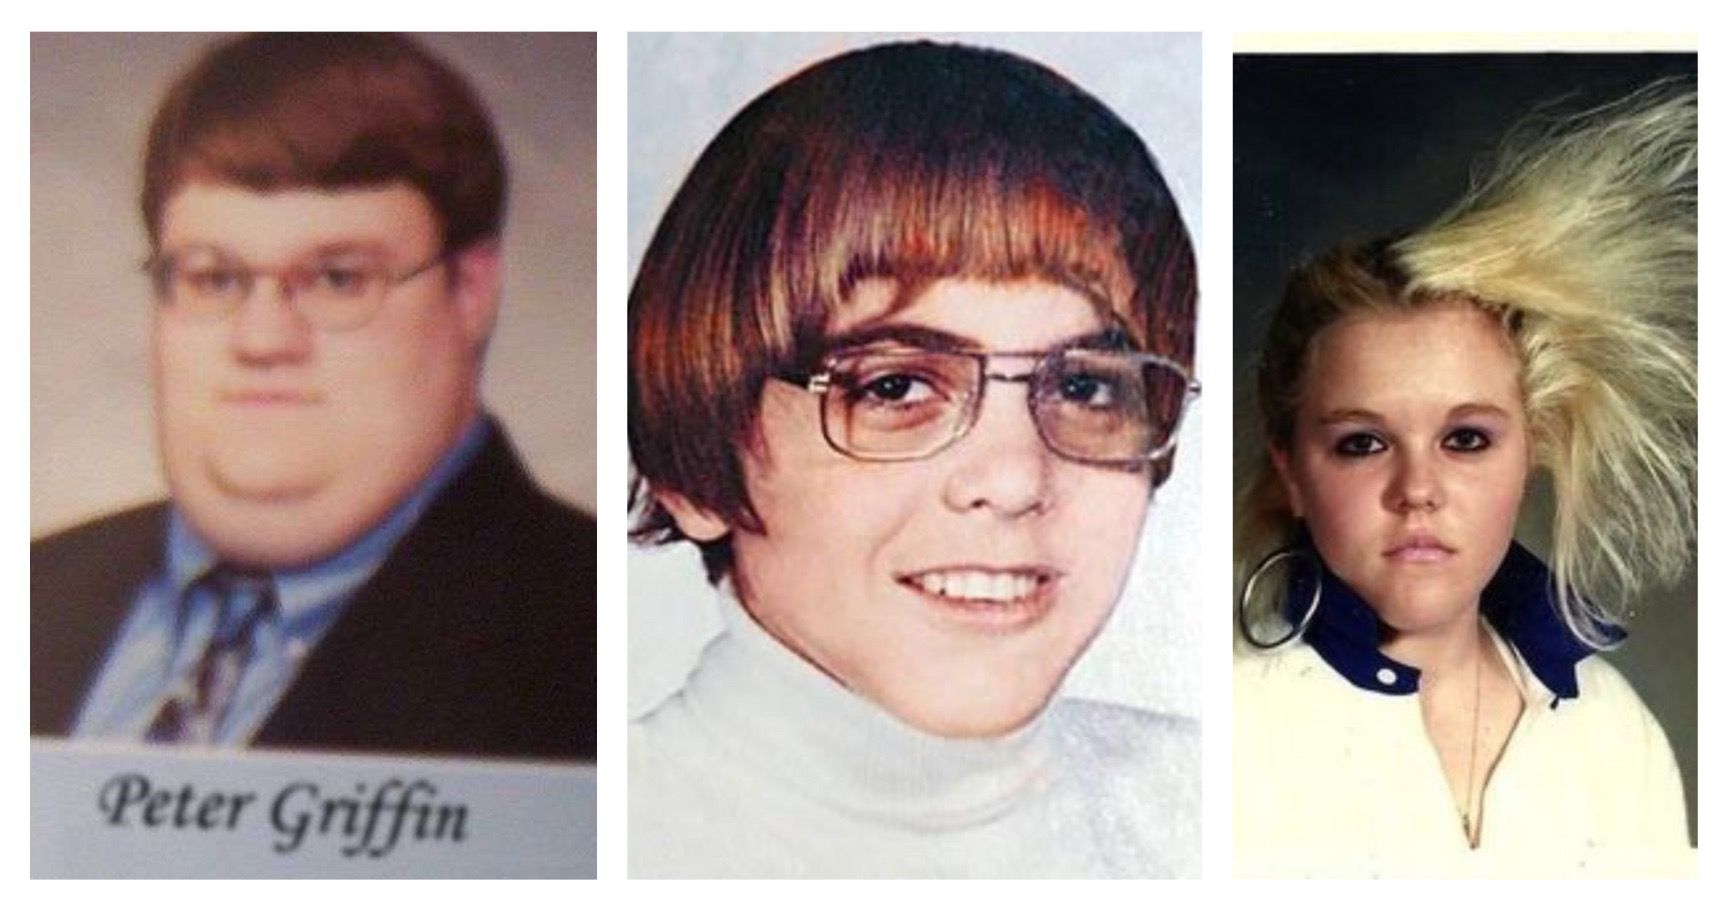 15 Horrible Yearbook Photo Fails That Never Should Have Been Shared